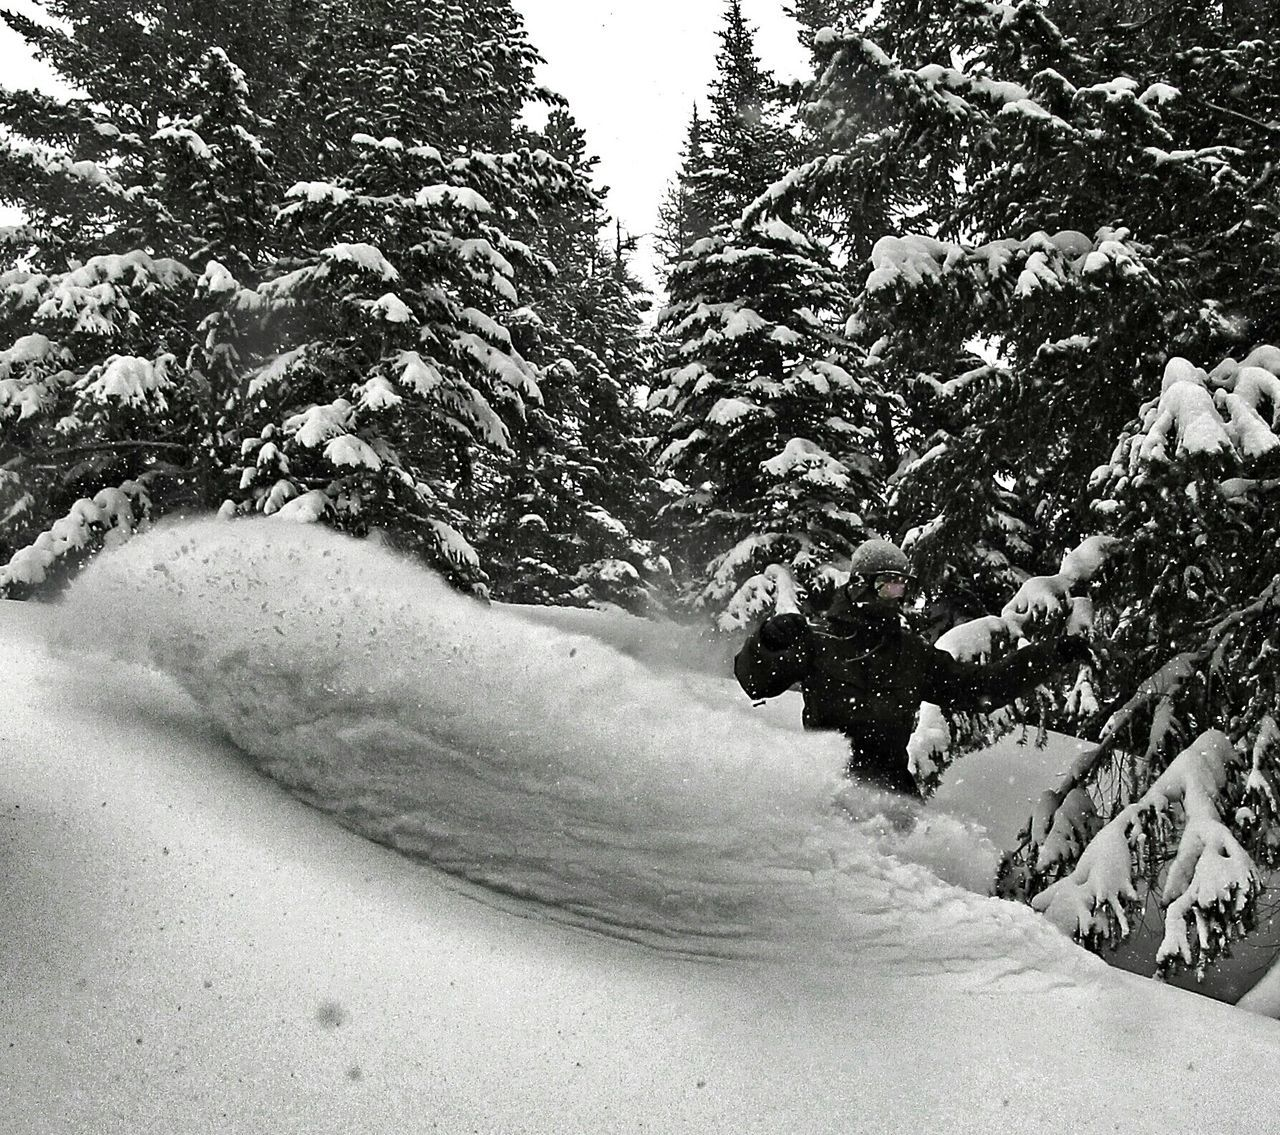 Eric Baker at Mission Ridge, WA. It's Cold Outside Adrenaline Junkie My Winter Favorites Cold Temperature Cold Days Cold Adventure Powderdays Young Adult Inspiring Washington Snowboard Snow Snowing Capture The Moment Mountain Life Shades Of Grey The Adventure Handbook Pacific Northwest  Backcountry Powder Mountain_collection Snowboarding Alternative Fitness Snow Sports Finding New Frontiers